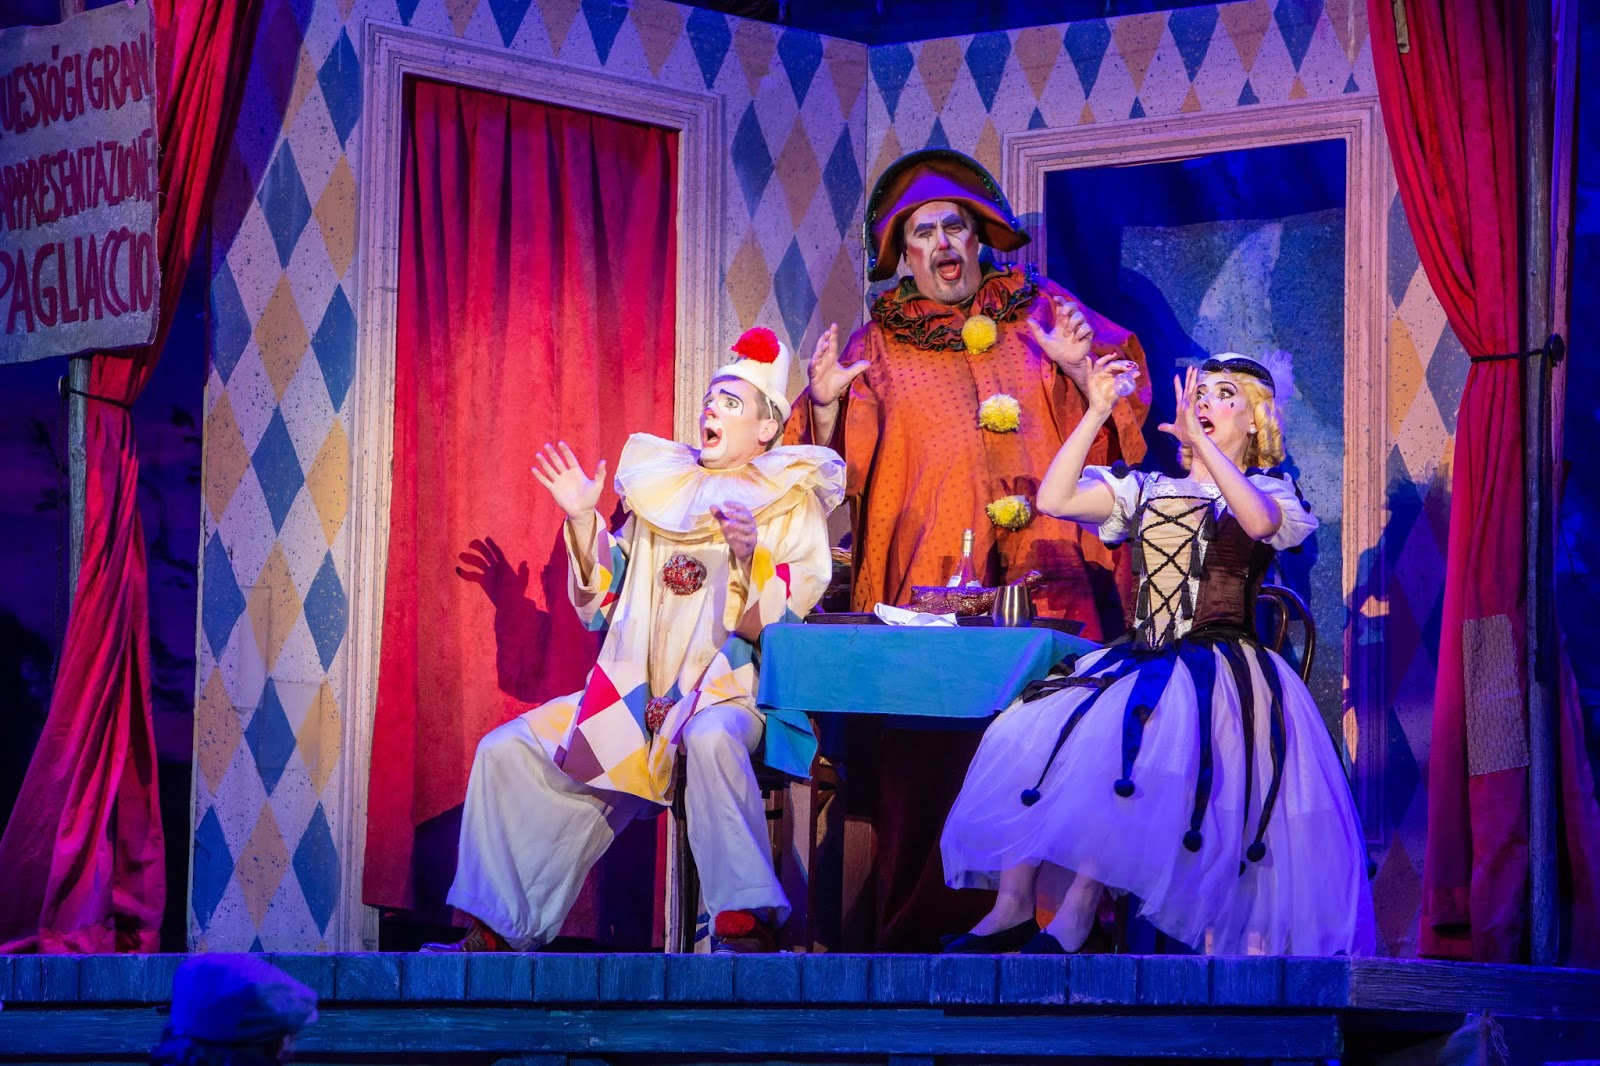 IN REVIEW: tenor JOEL SORENSEN as Beppe (left), baritone RICHARD ZELLER as Tonio (center), and soprano SUZANNE KANTORSKI as Nedda (right) in Greensboro Opera's November 2019 production of Ruggero Leoncavallo's PAGLIACCI [Photograph by Becky VanderVeen, © by VanderBeen Photography & Greensboro Opera]